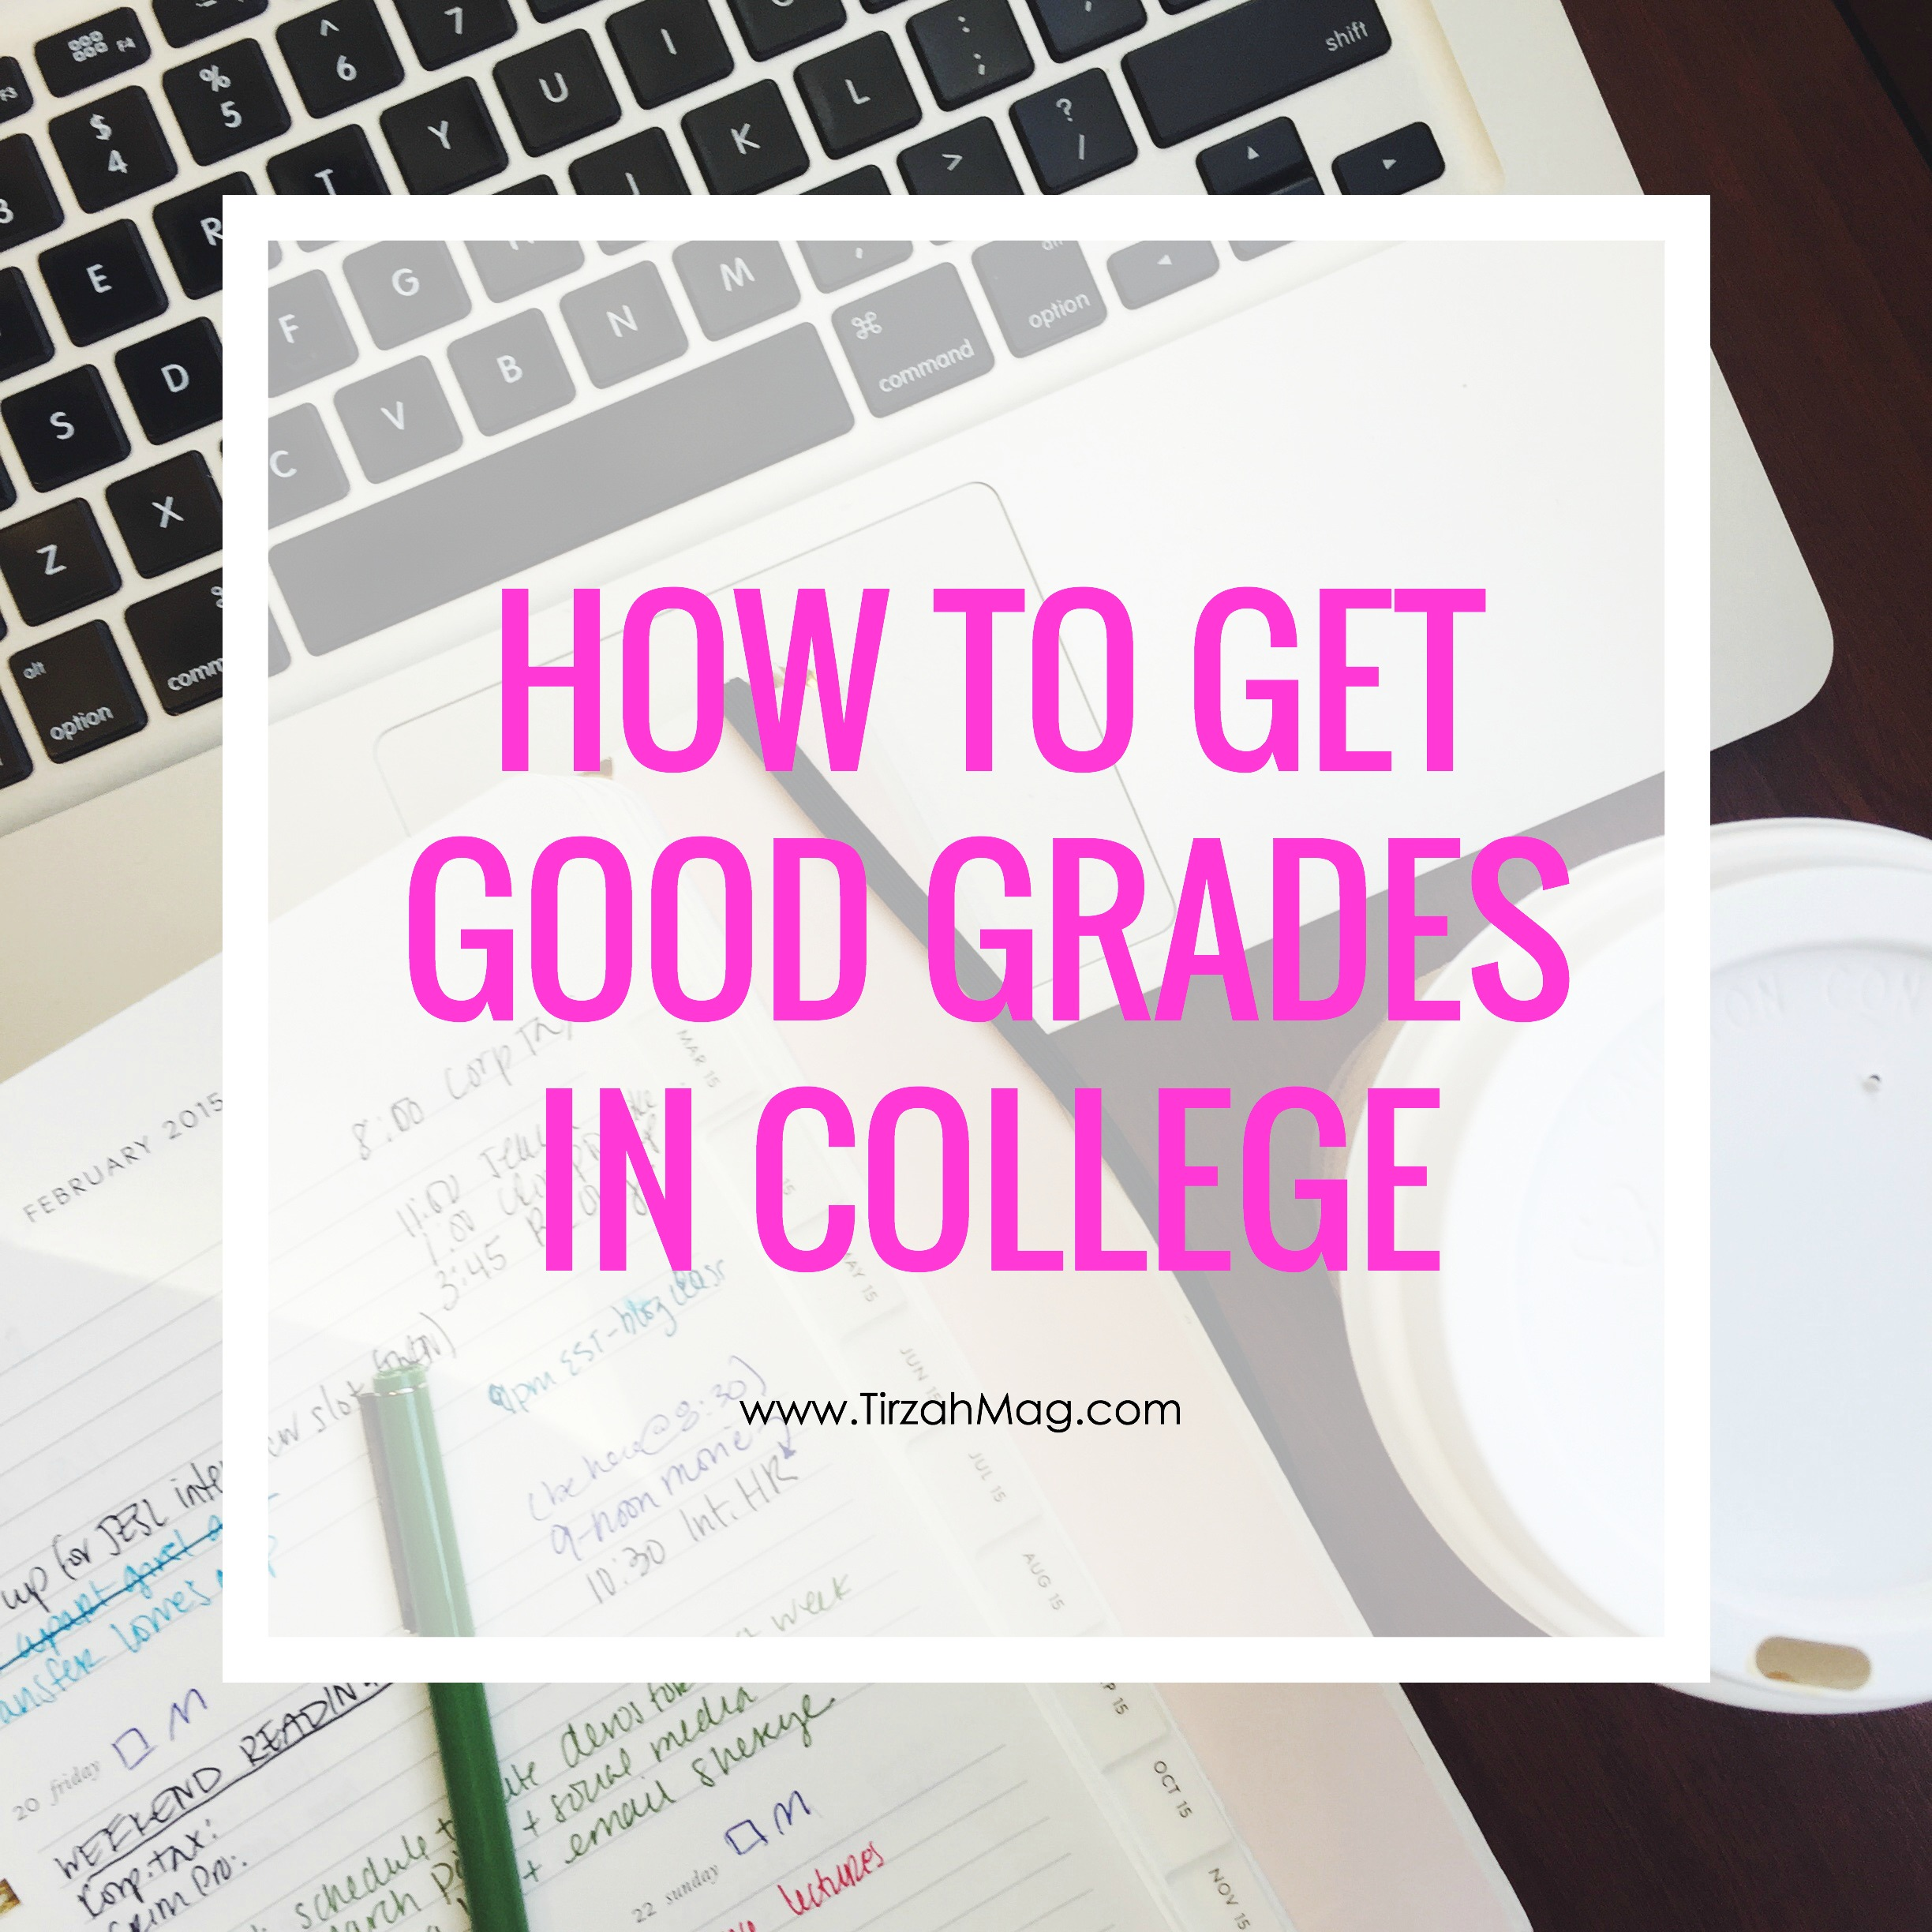 A law student shares her tried and true tips on creating successful study habits and getting good grades in college